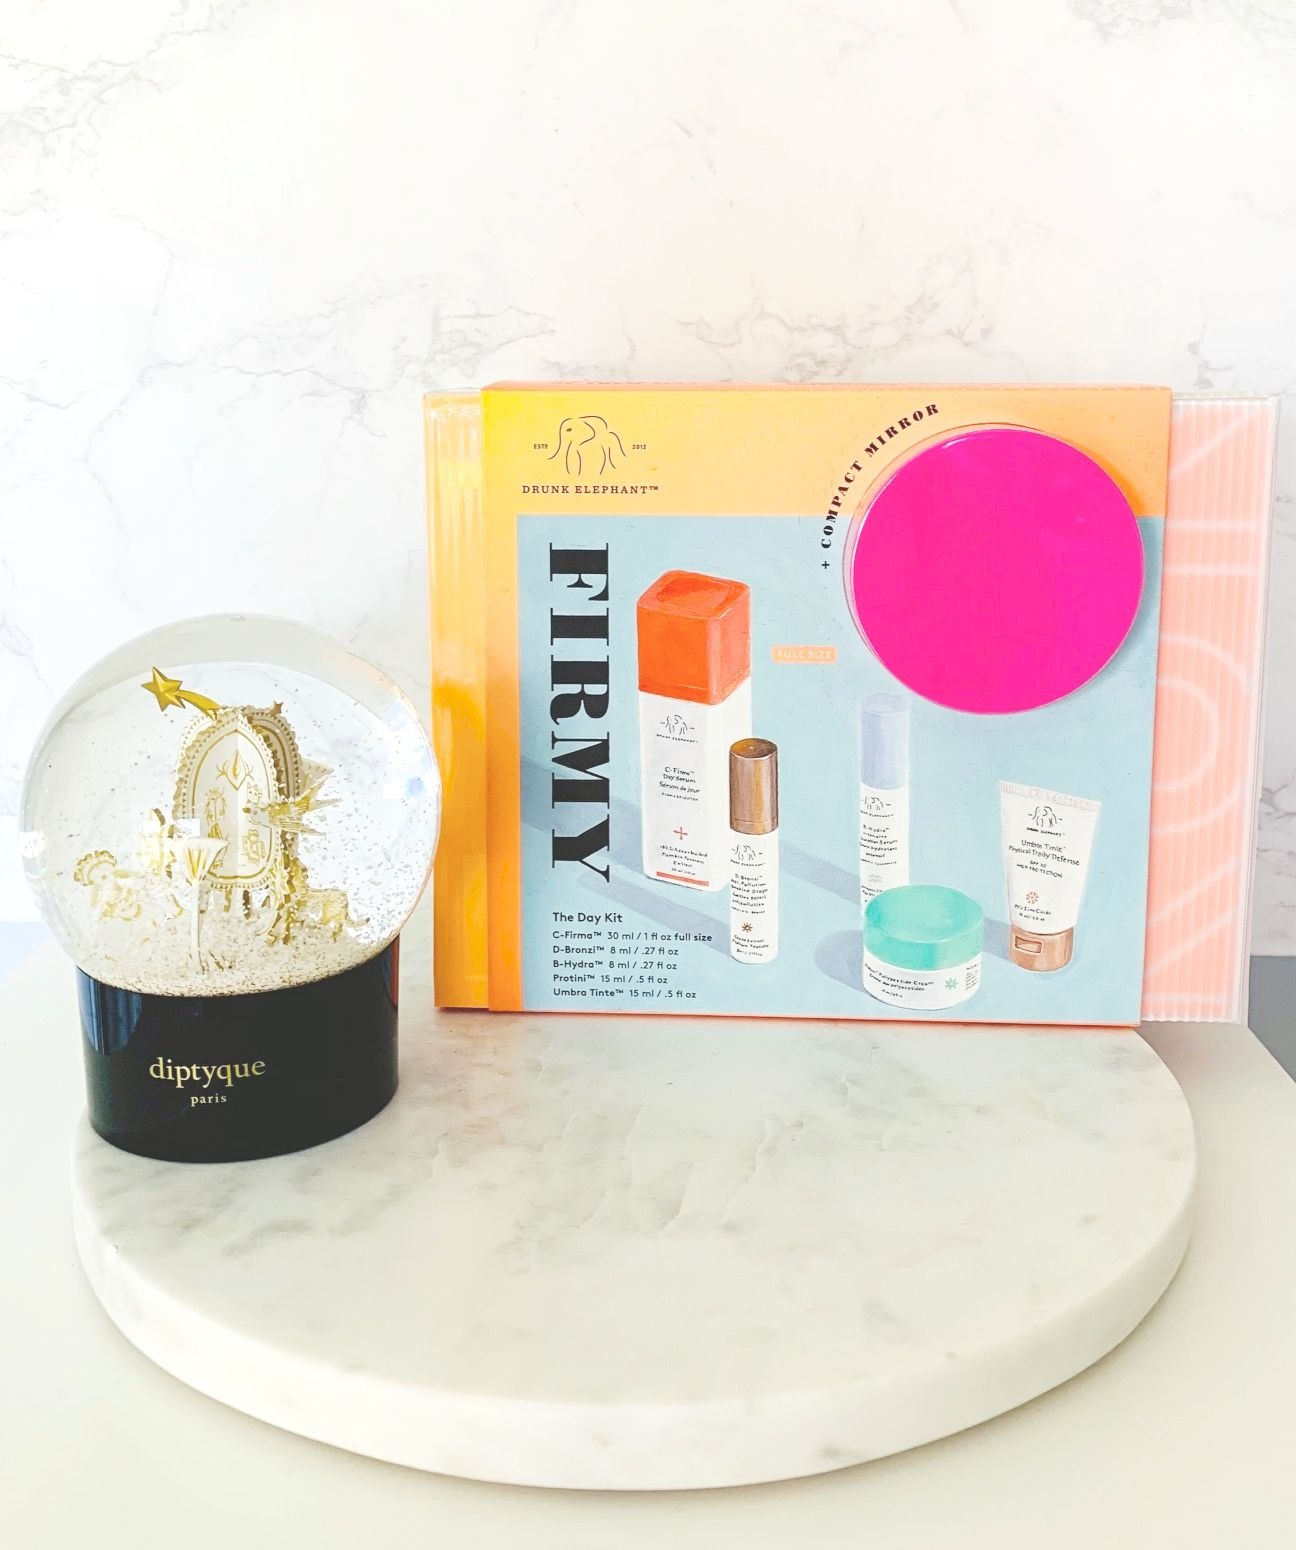 Drunk Elephant Firmy The Day Kit Review